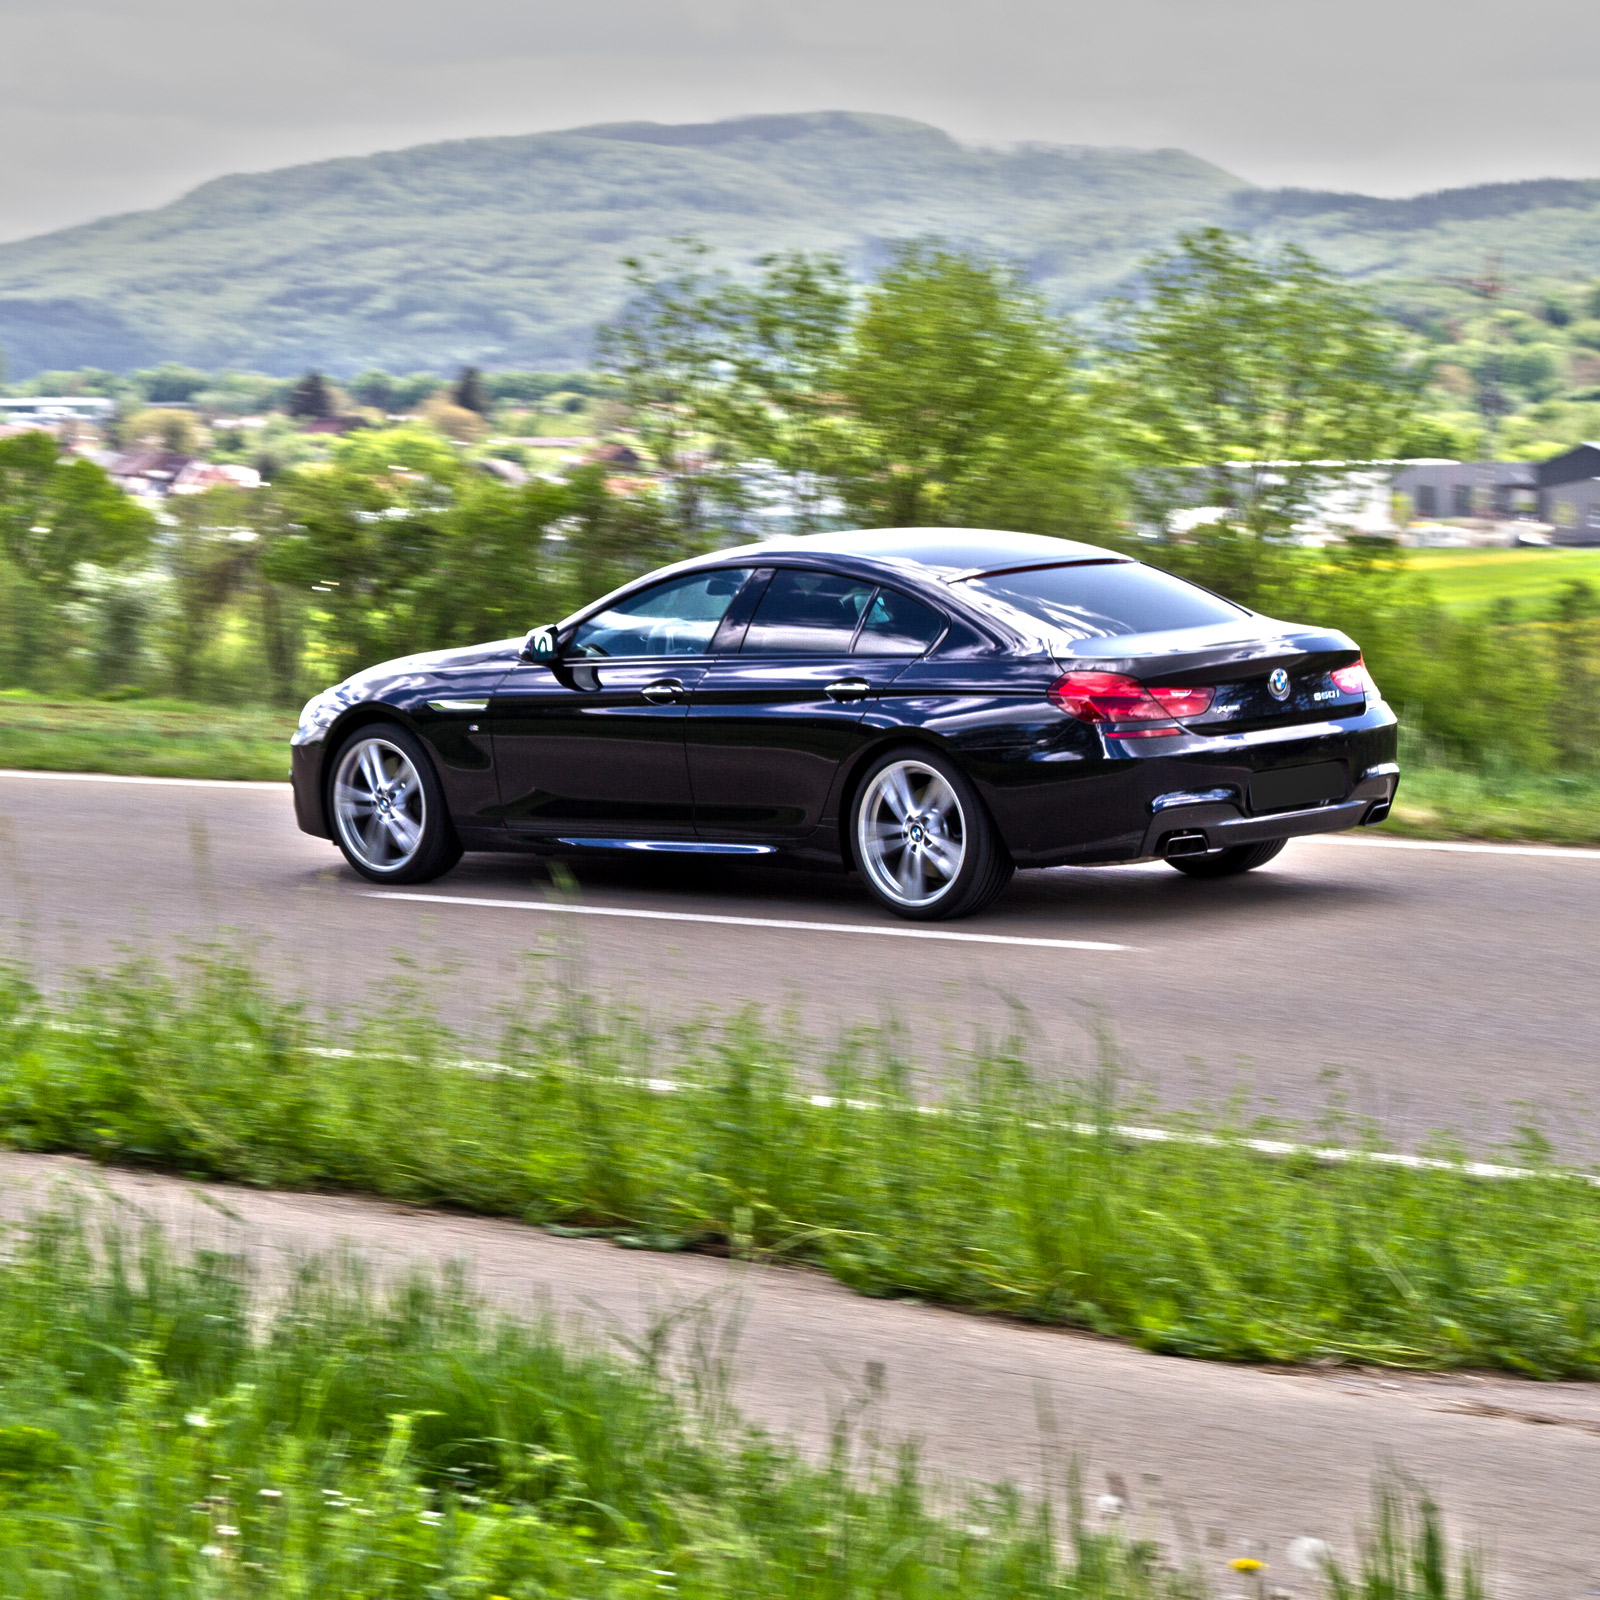 In test - the BMW 650i